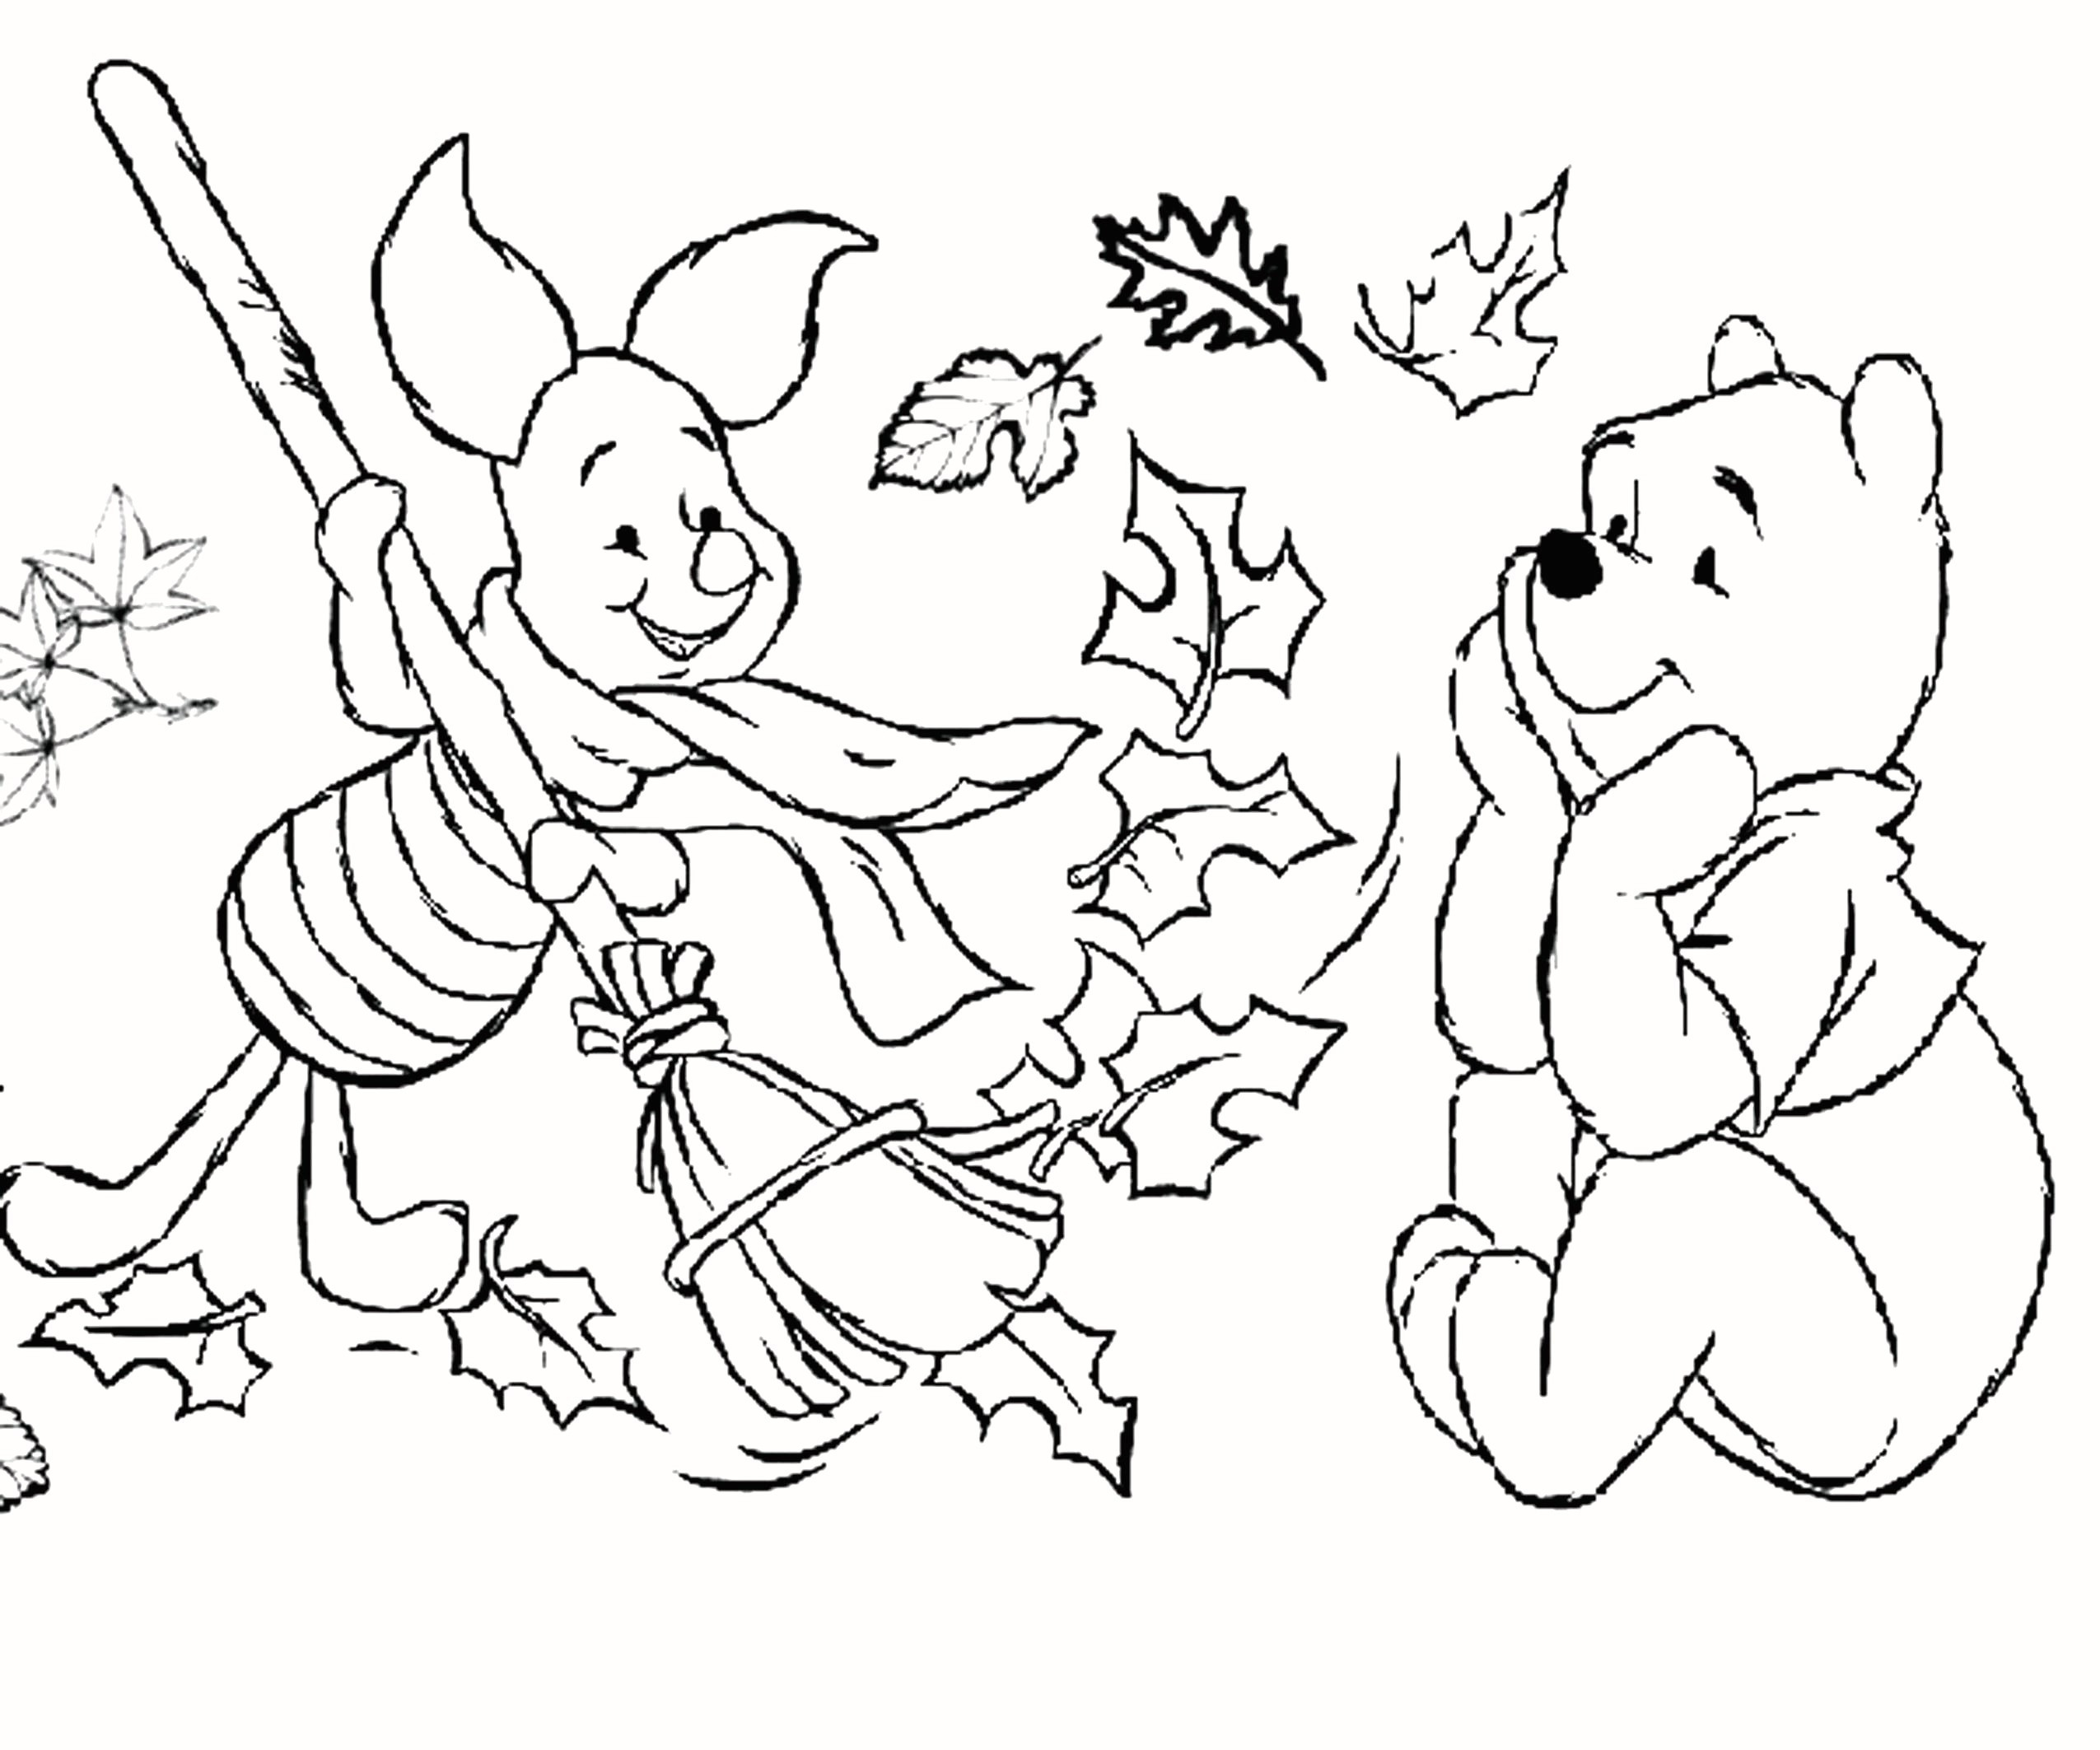 Electricity Coloring Pages  to Print 2f - To print for your project